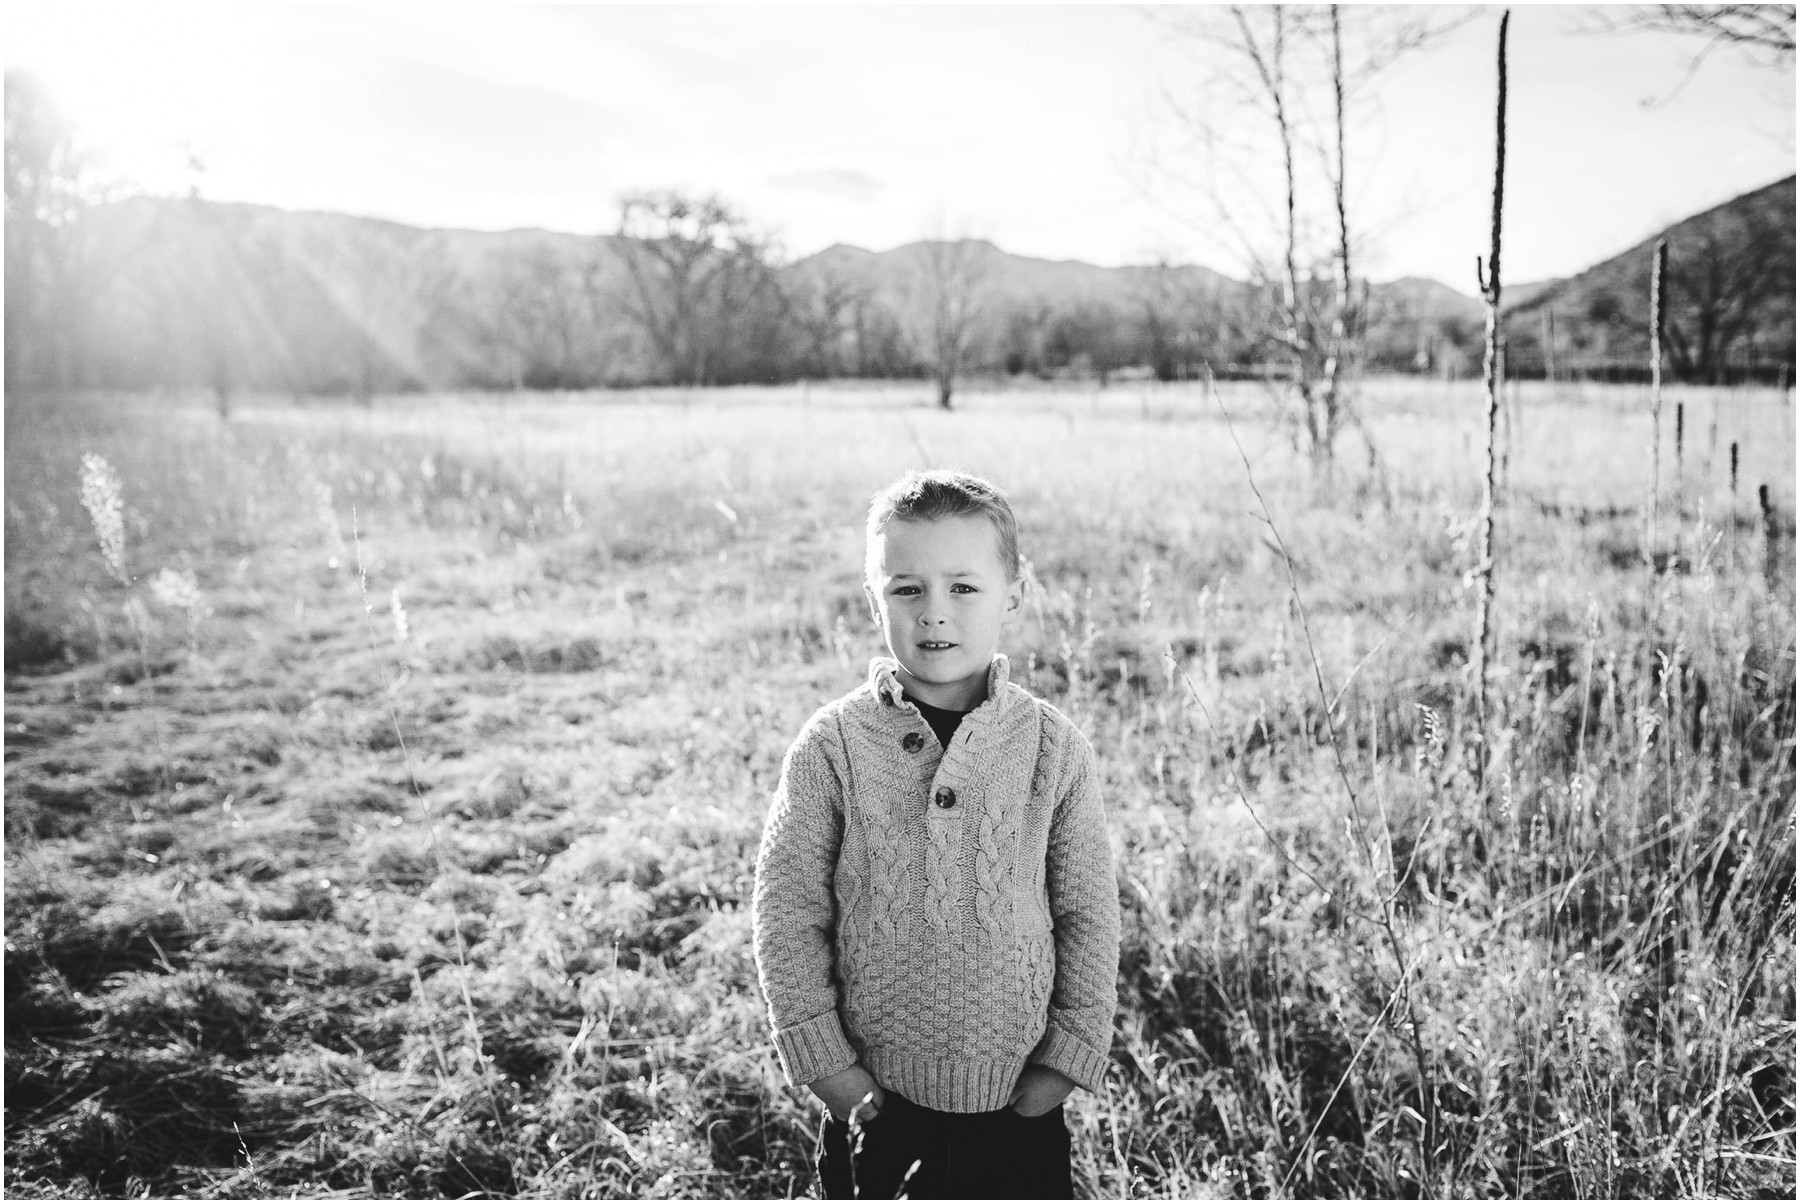 ft. Collins child portrait in black and white